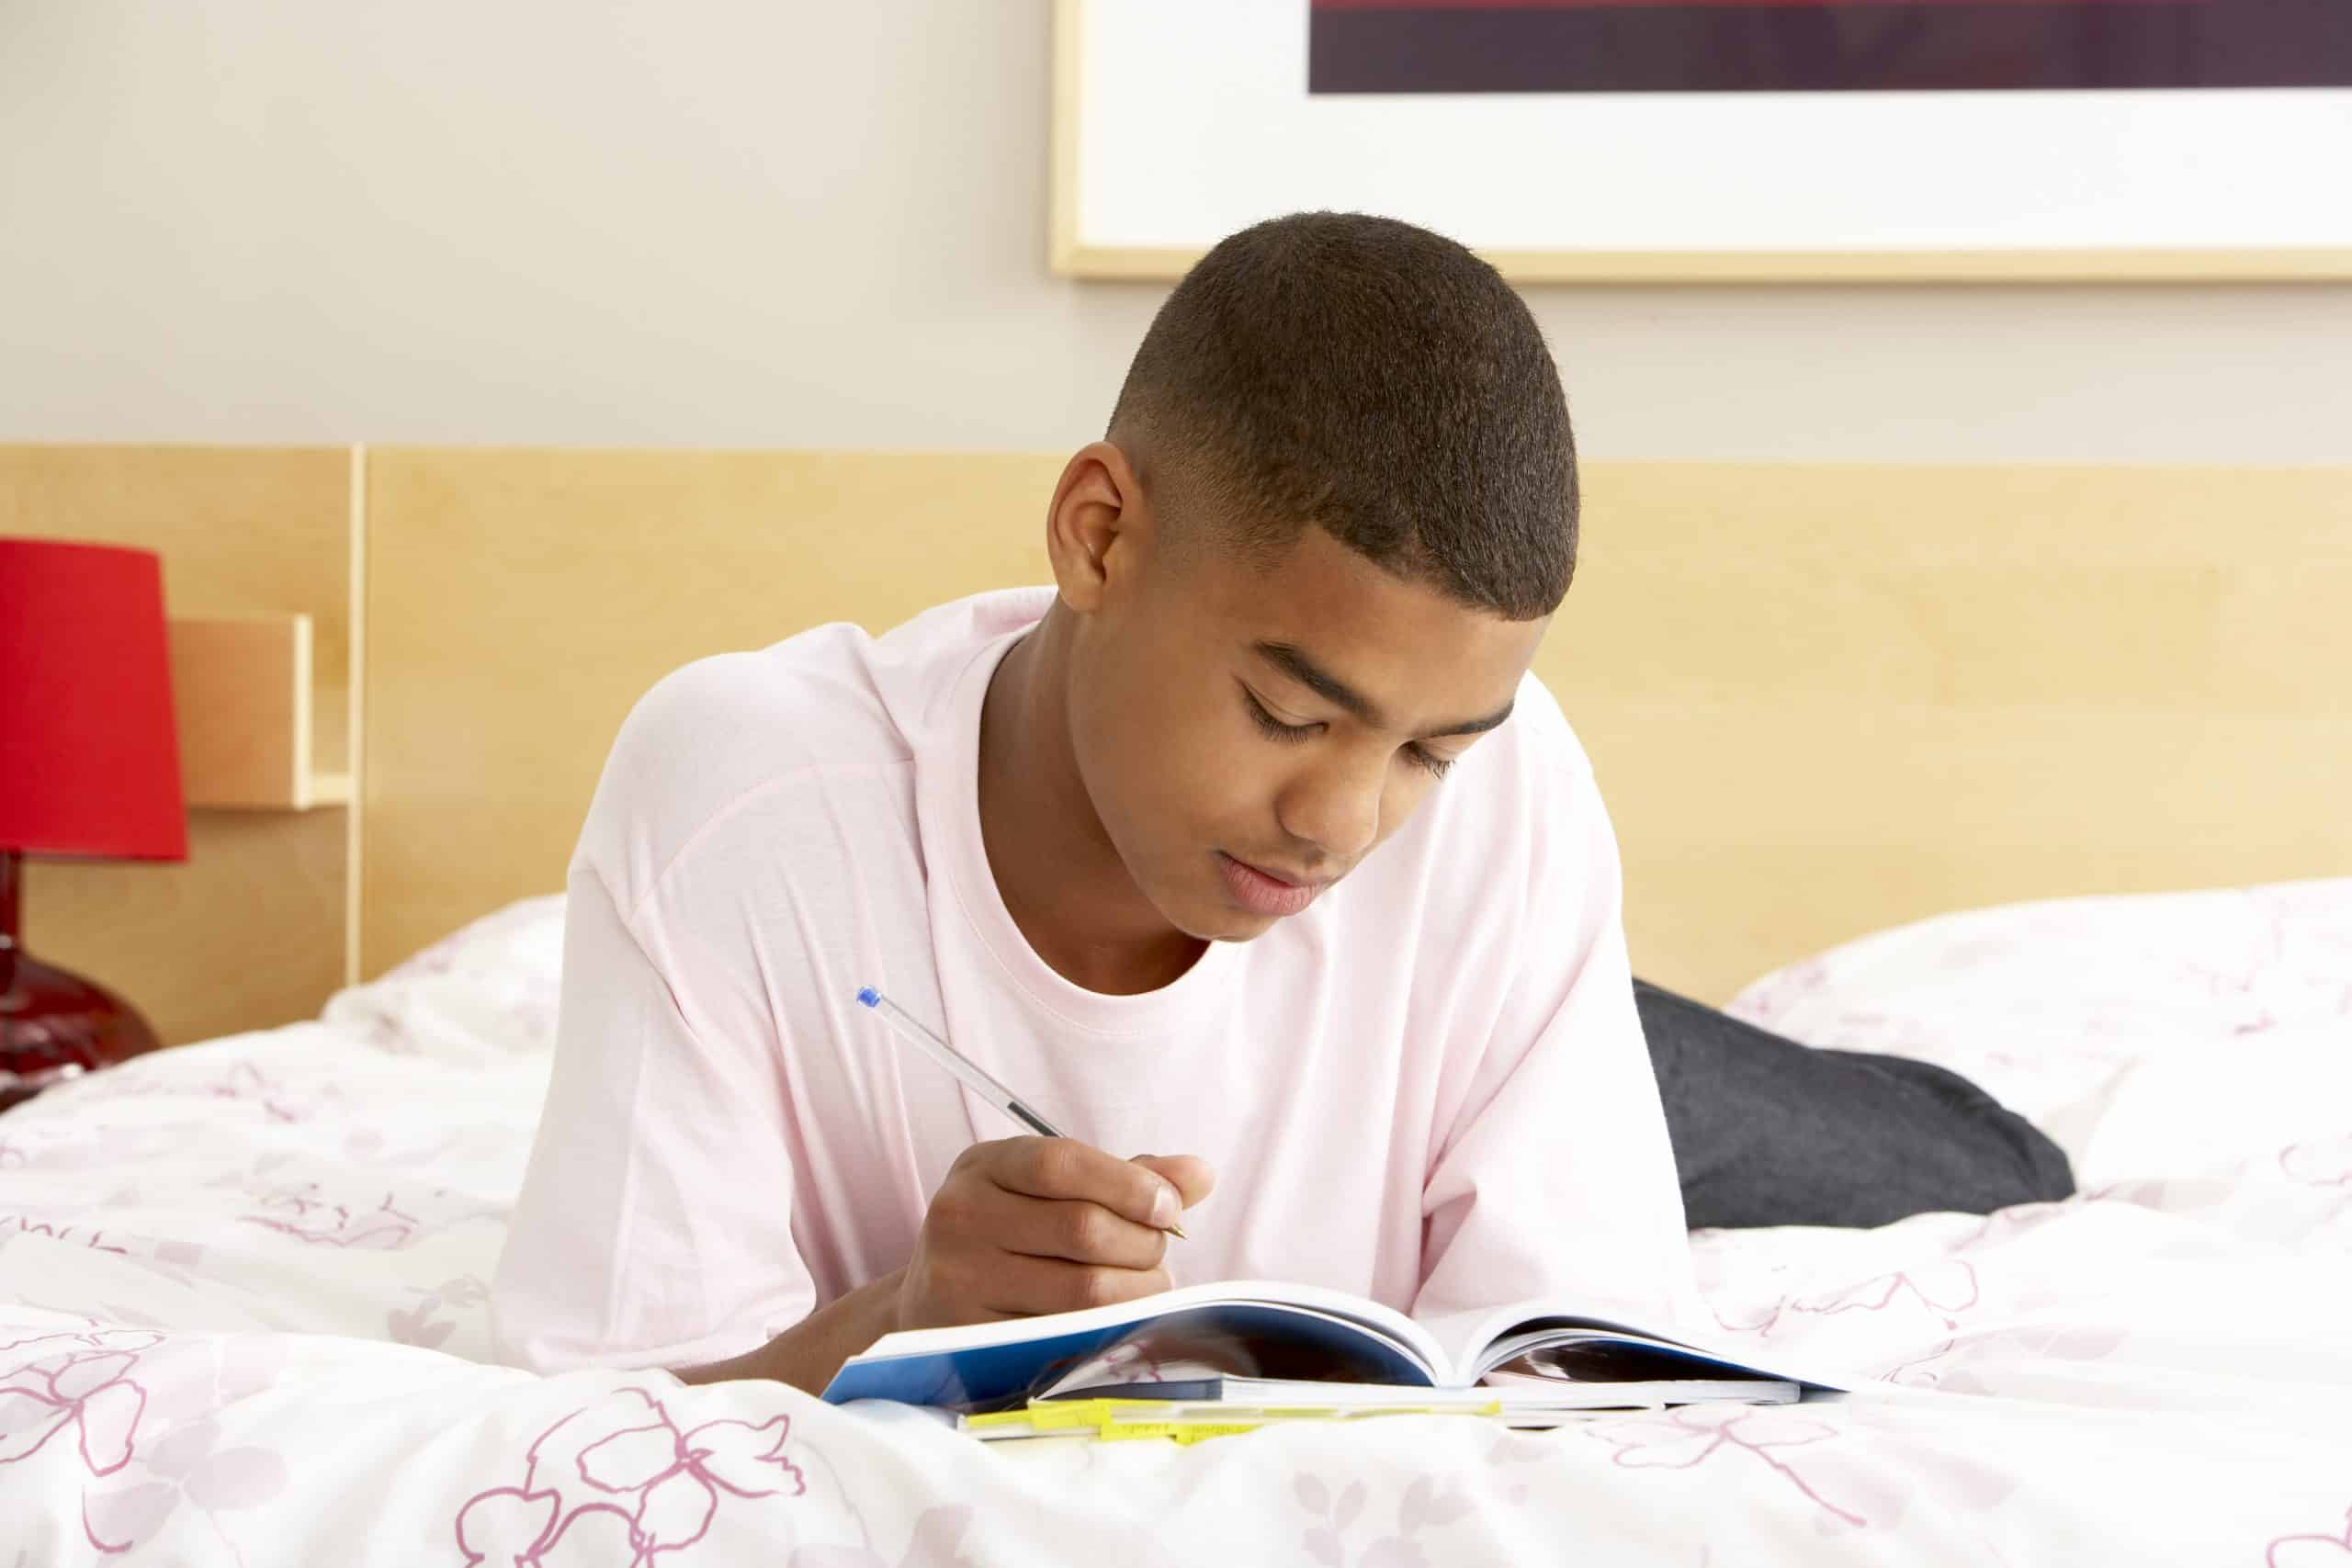 help boys express emotions boy writing in diary